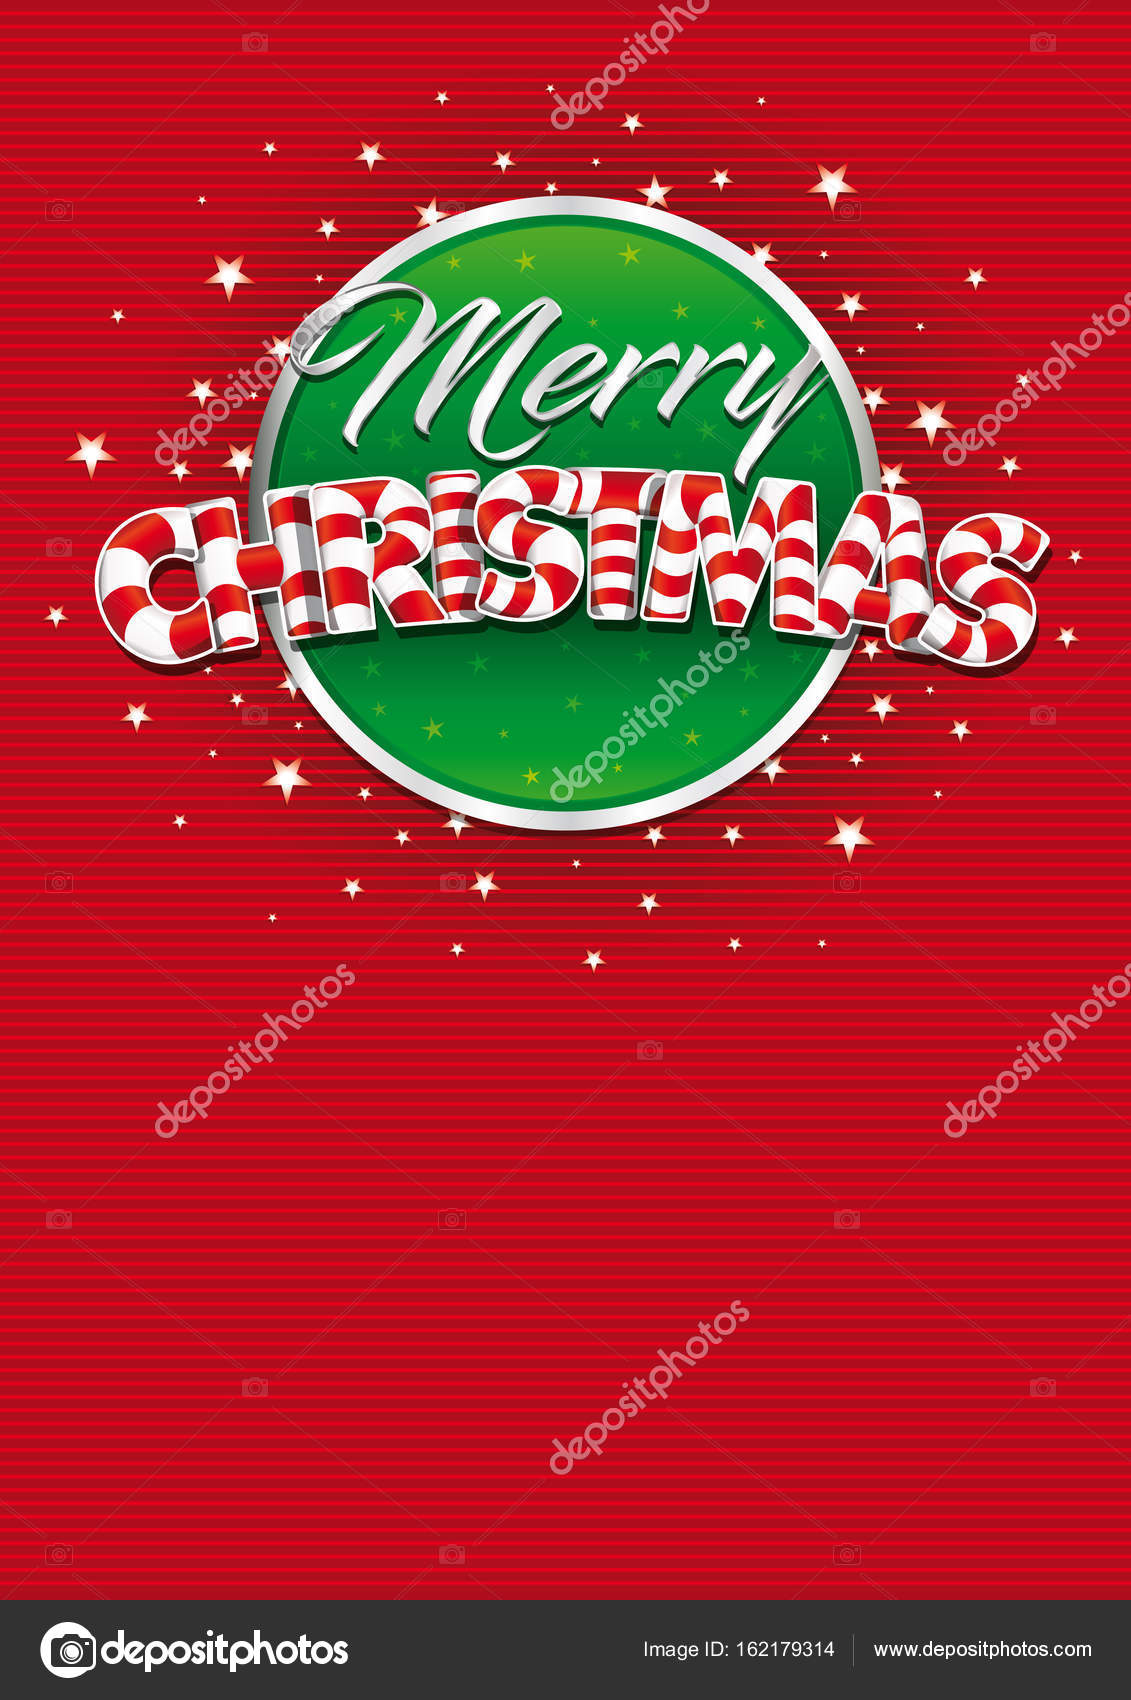 Merry christmas lettering red cover of greeting card with lines merry christmas lettering red cover of greeting card with lines texture in background layout m4hsunfo